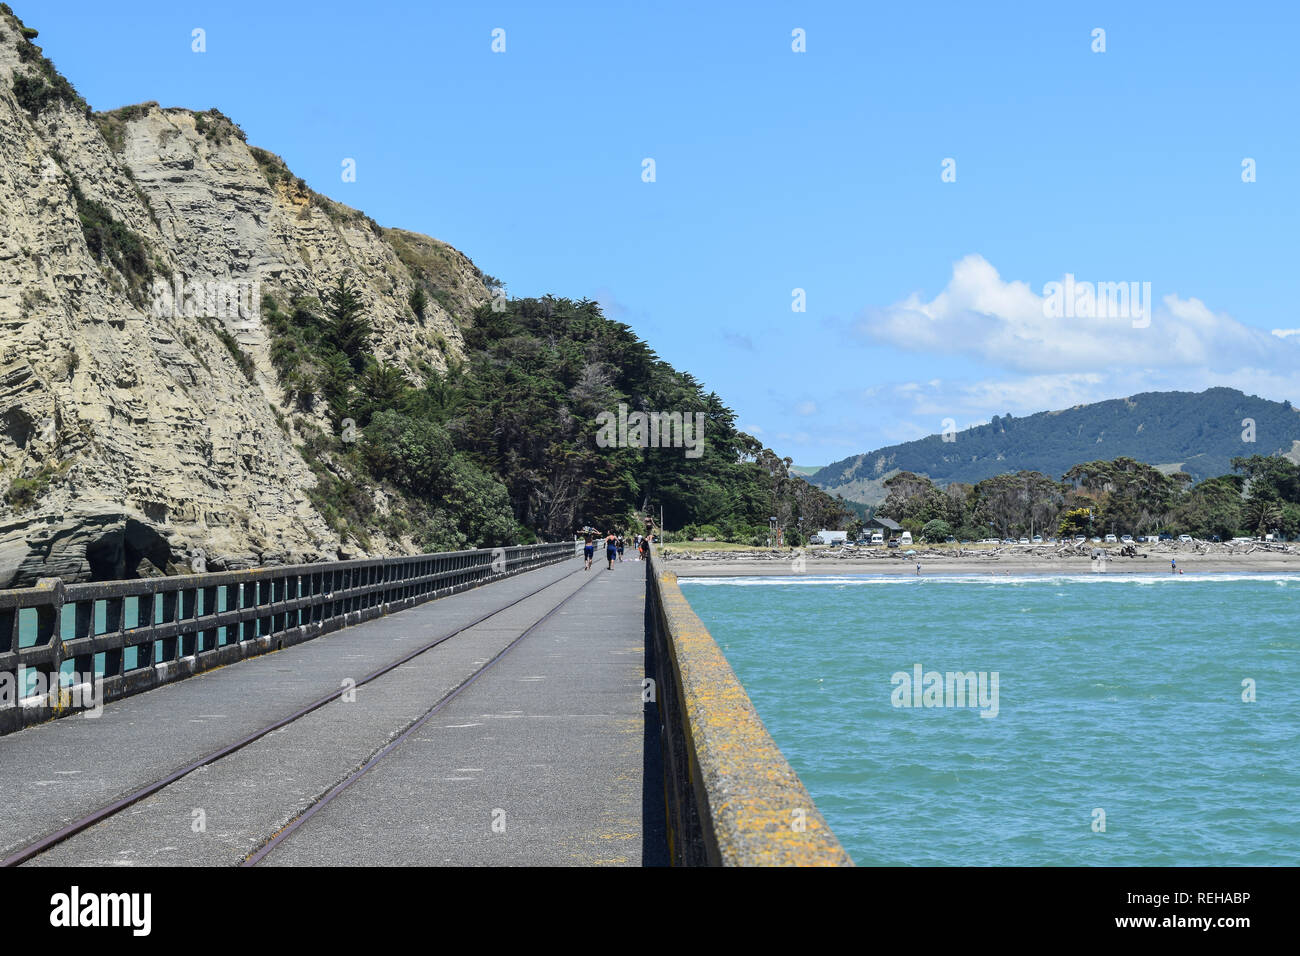 A couple stroll along the long concrete pier in Tolaga Bay, New Zealand - Stock Image